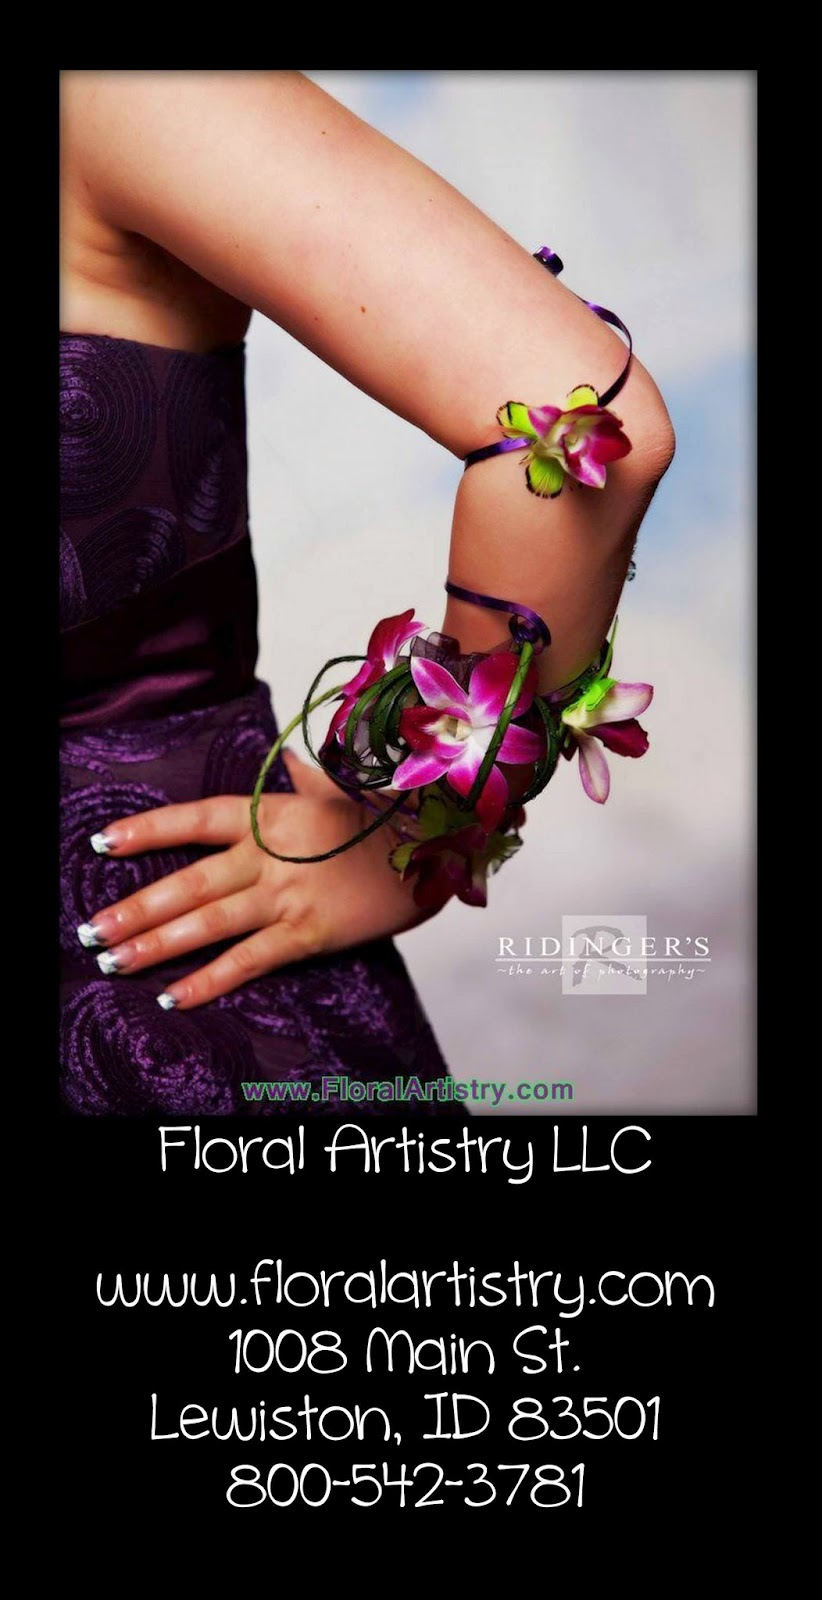 http://www.floralartistry.com/